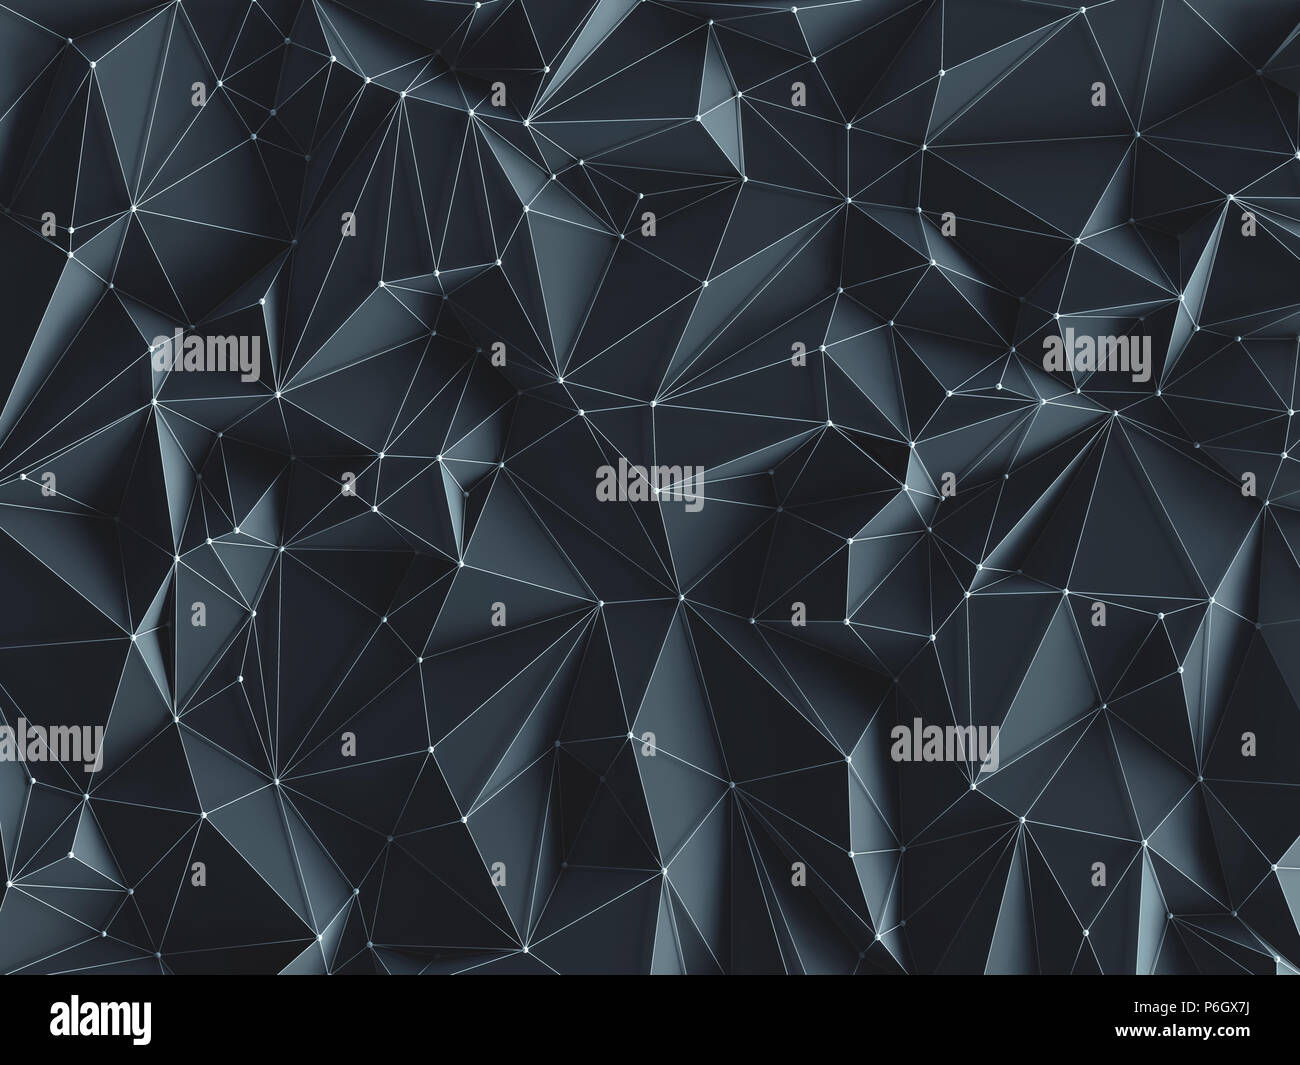 3D illustration. Abstract background image, in lines et géométriques formes triangulaires. Photo Stock